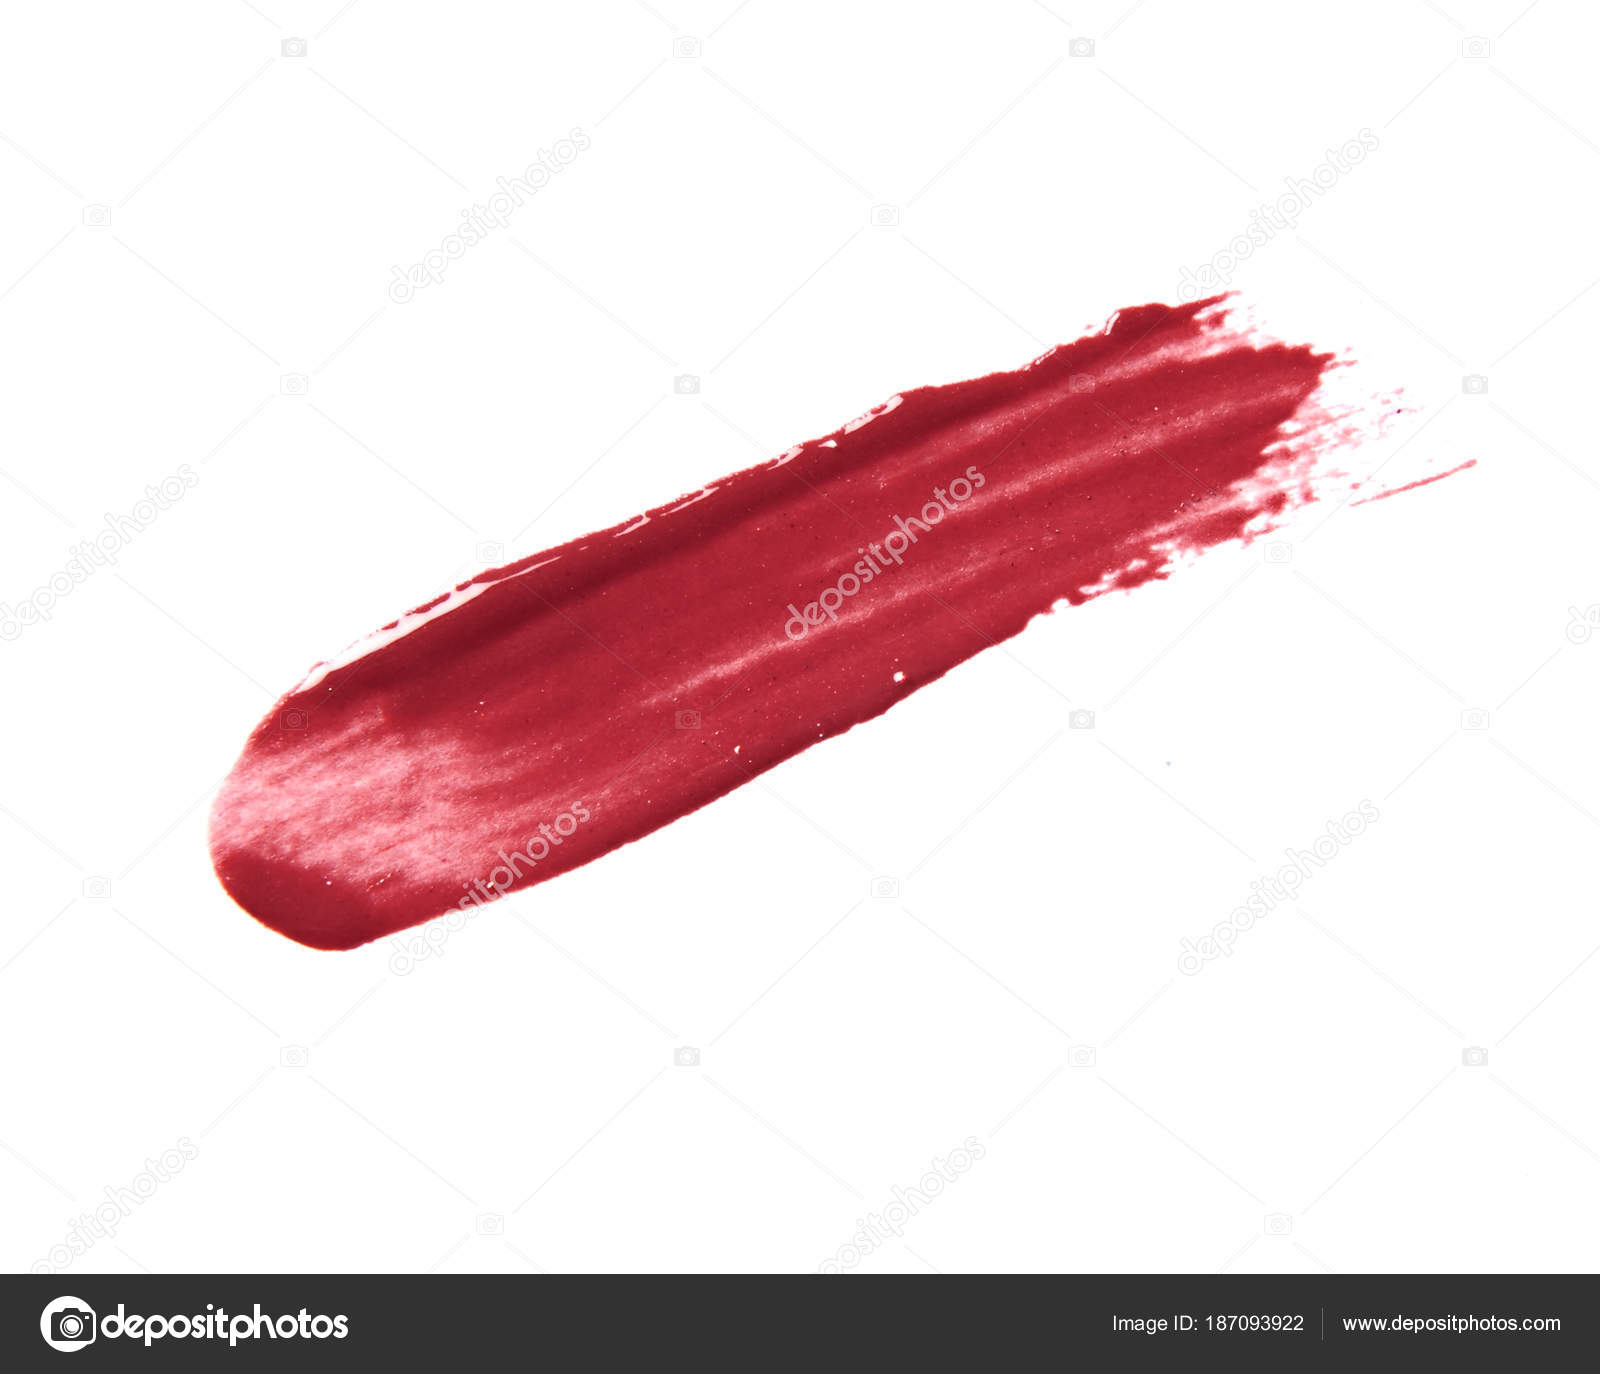 red lipstick stroke isolated